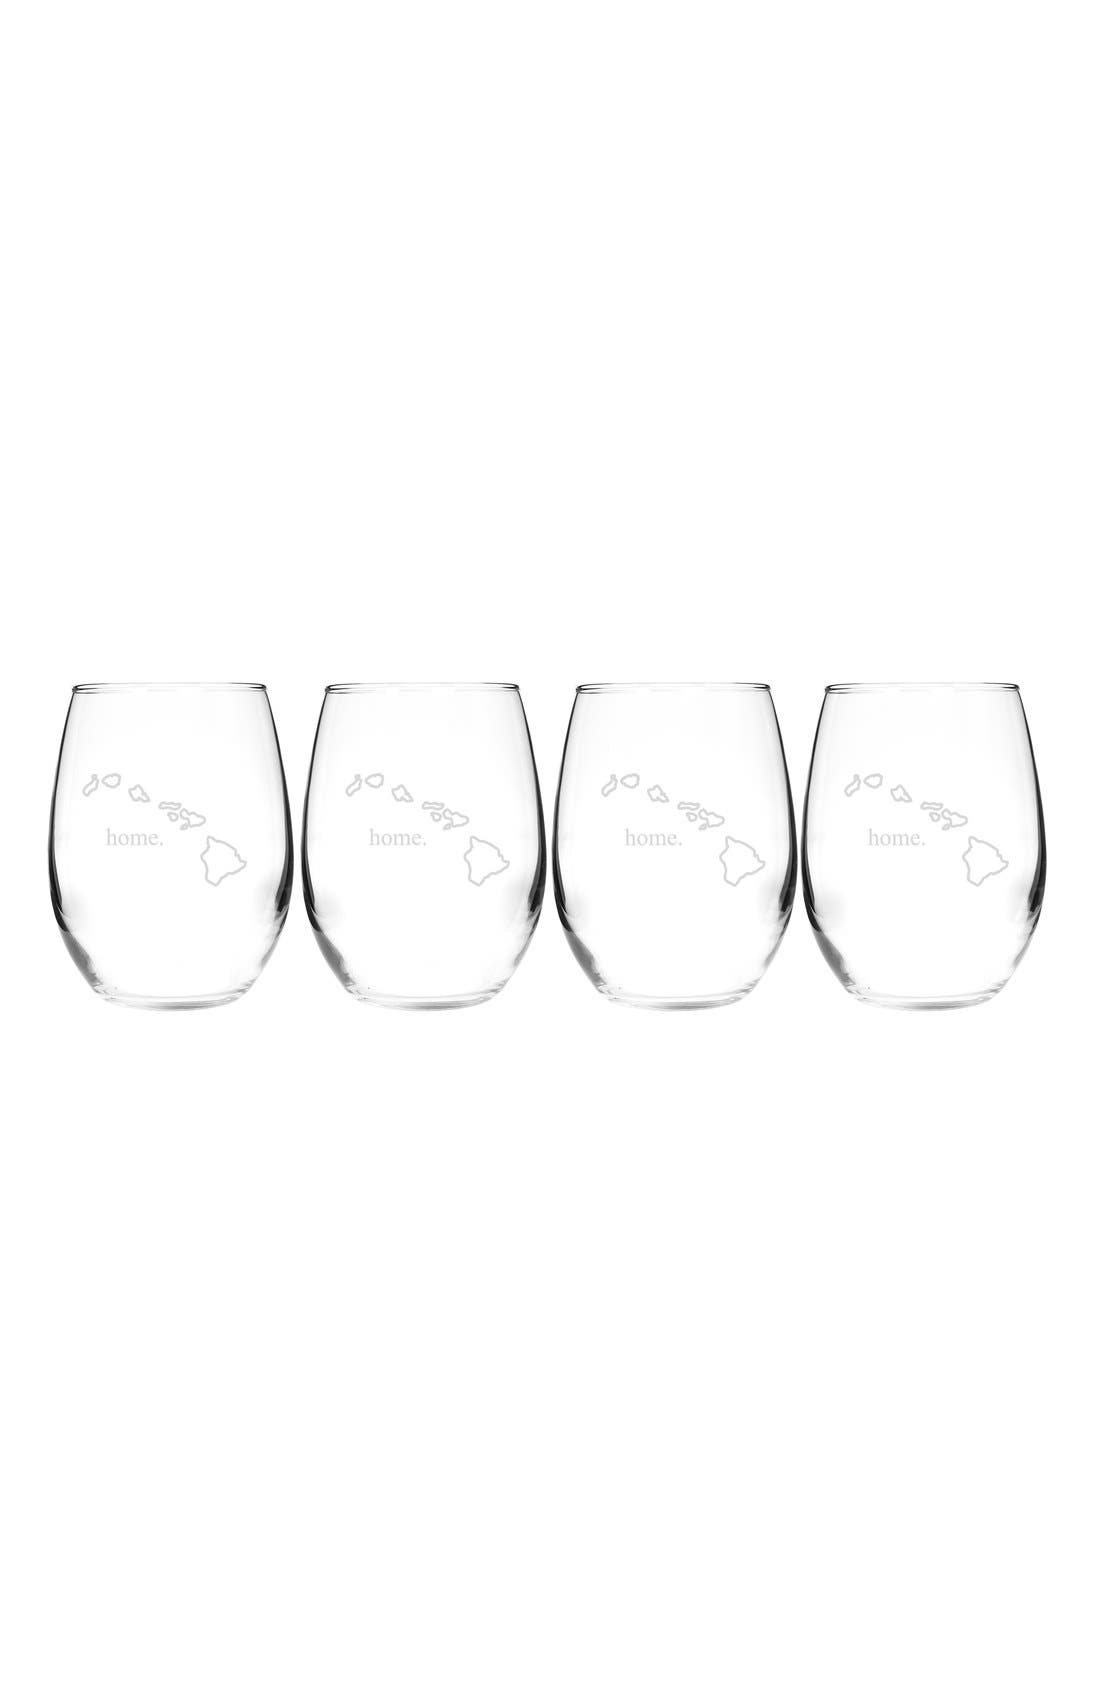 Home State Set of 4 Stemless Wine Glasses,                             Main thumbnail 12, color,